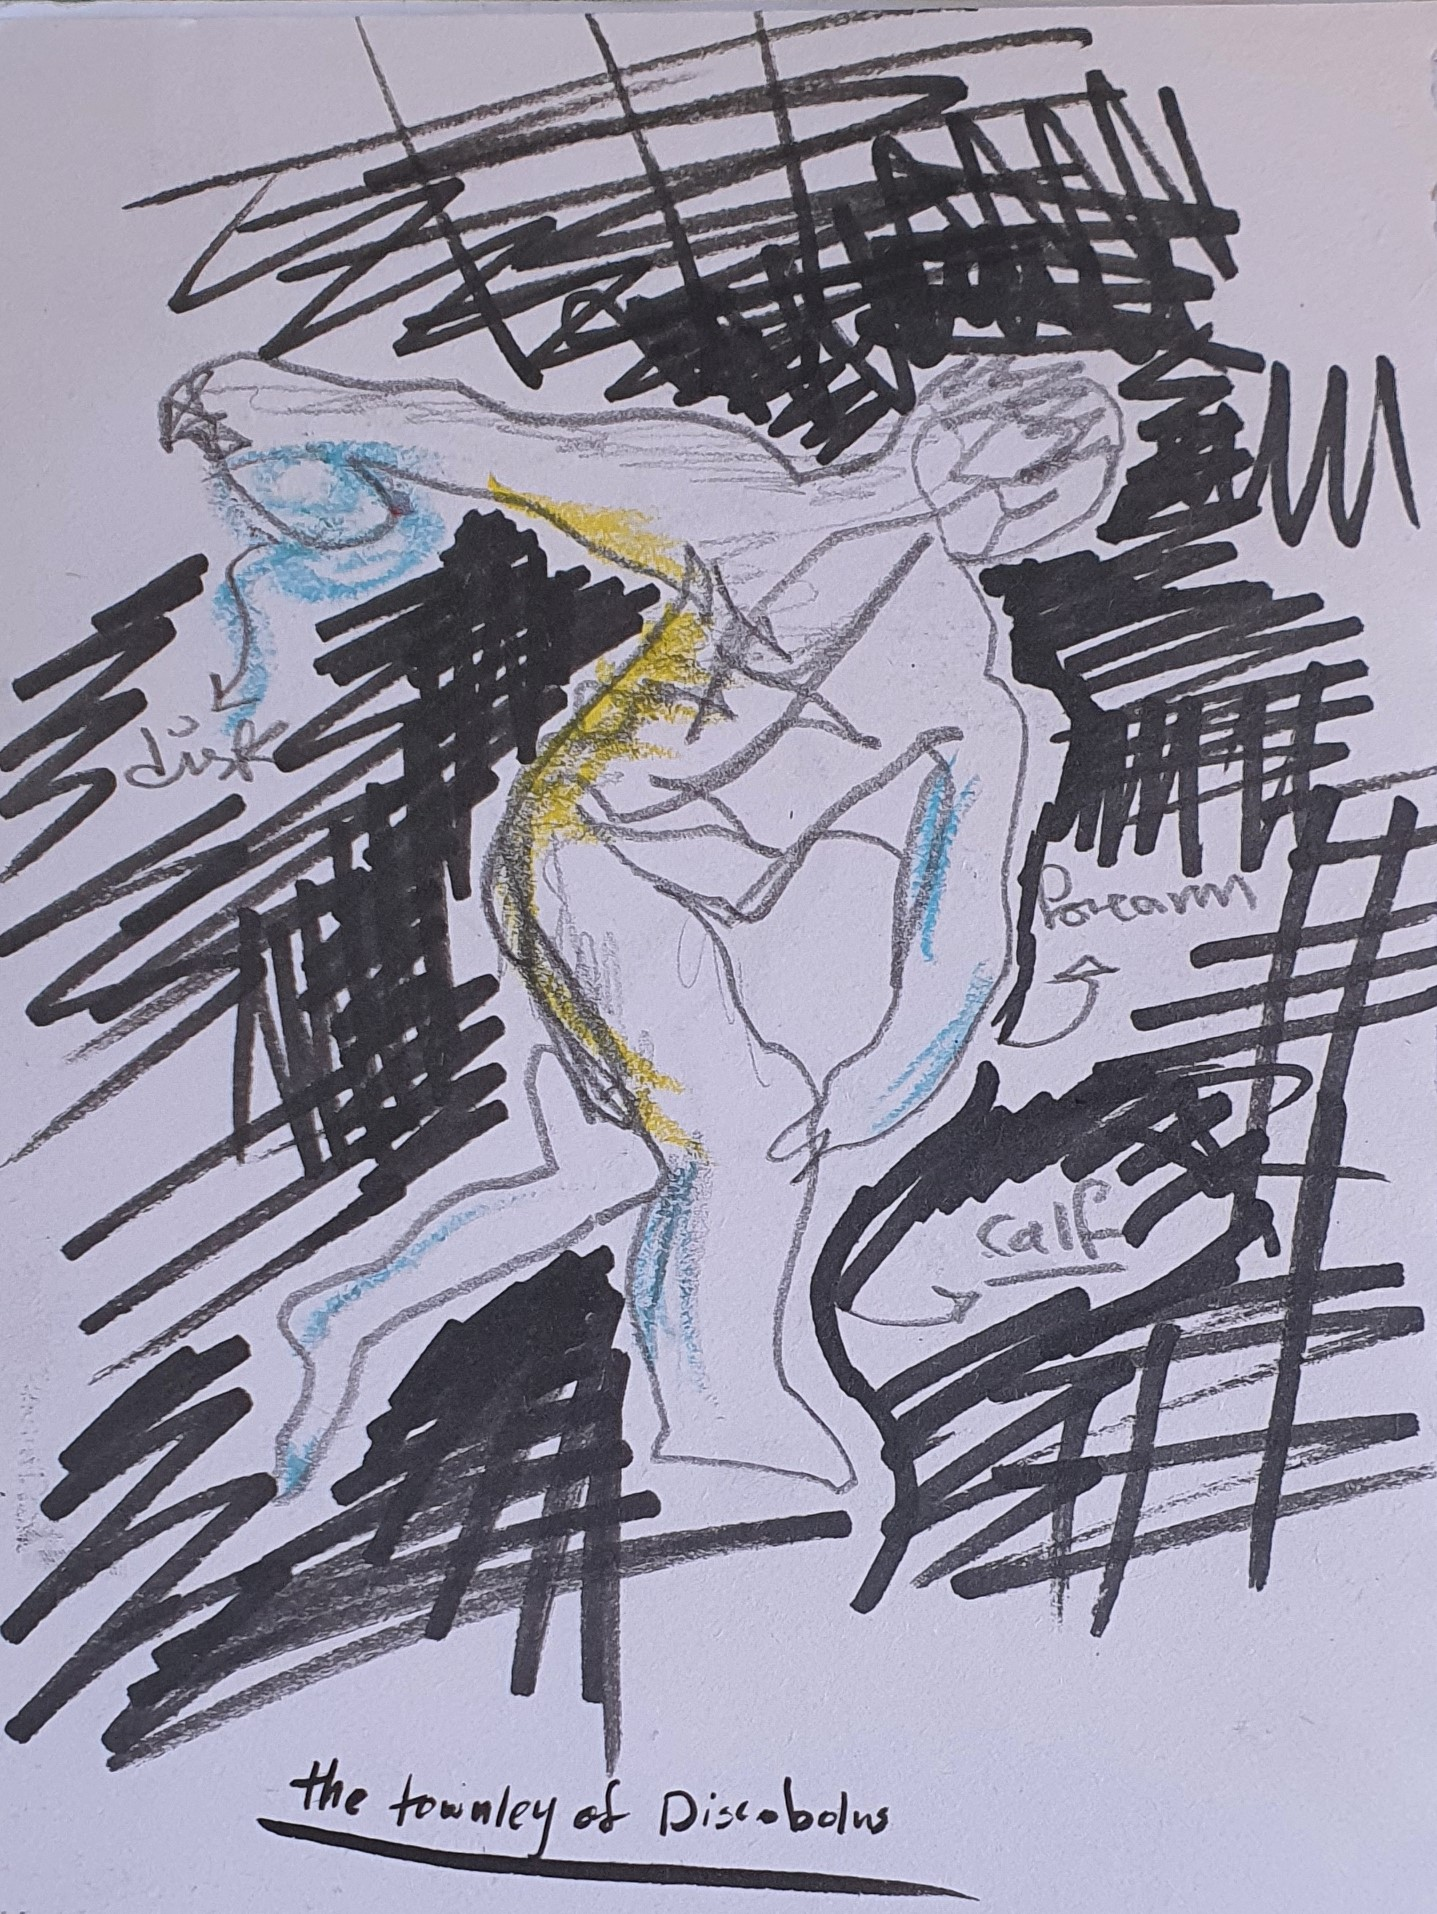 Sketch by Layan Barazi of a human figure leaning forward